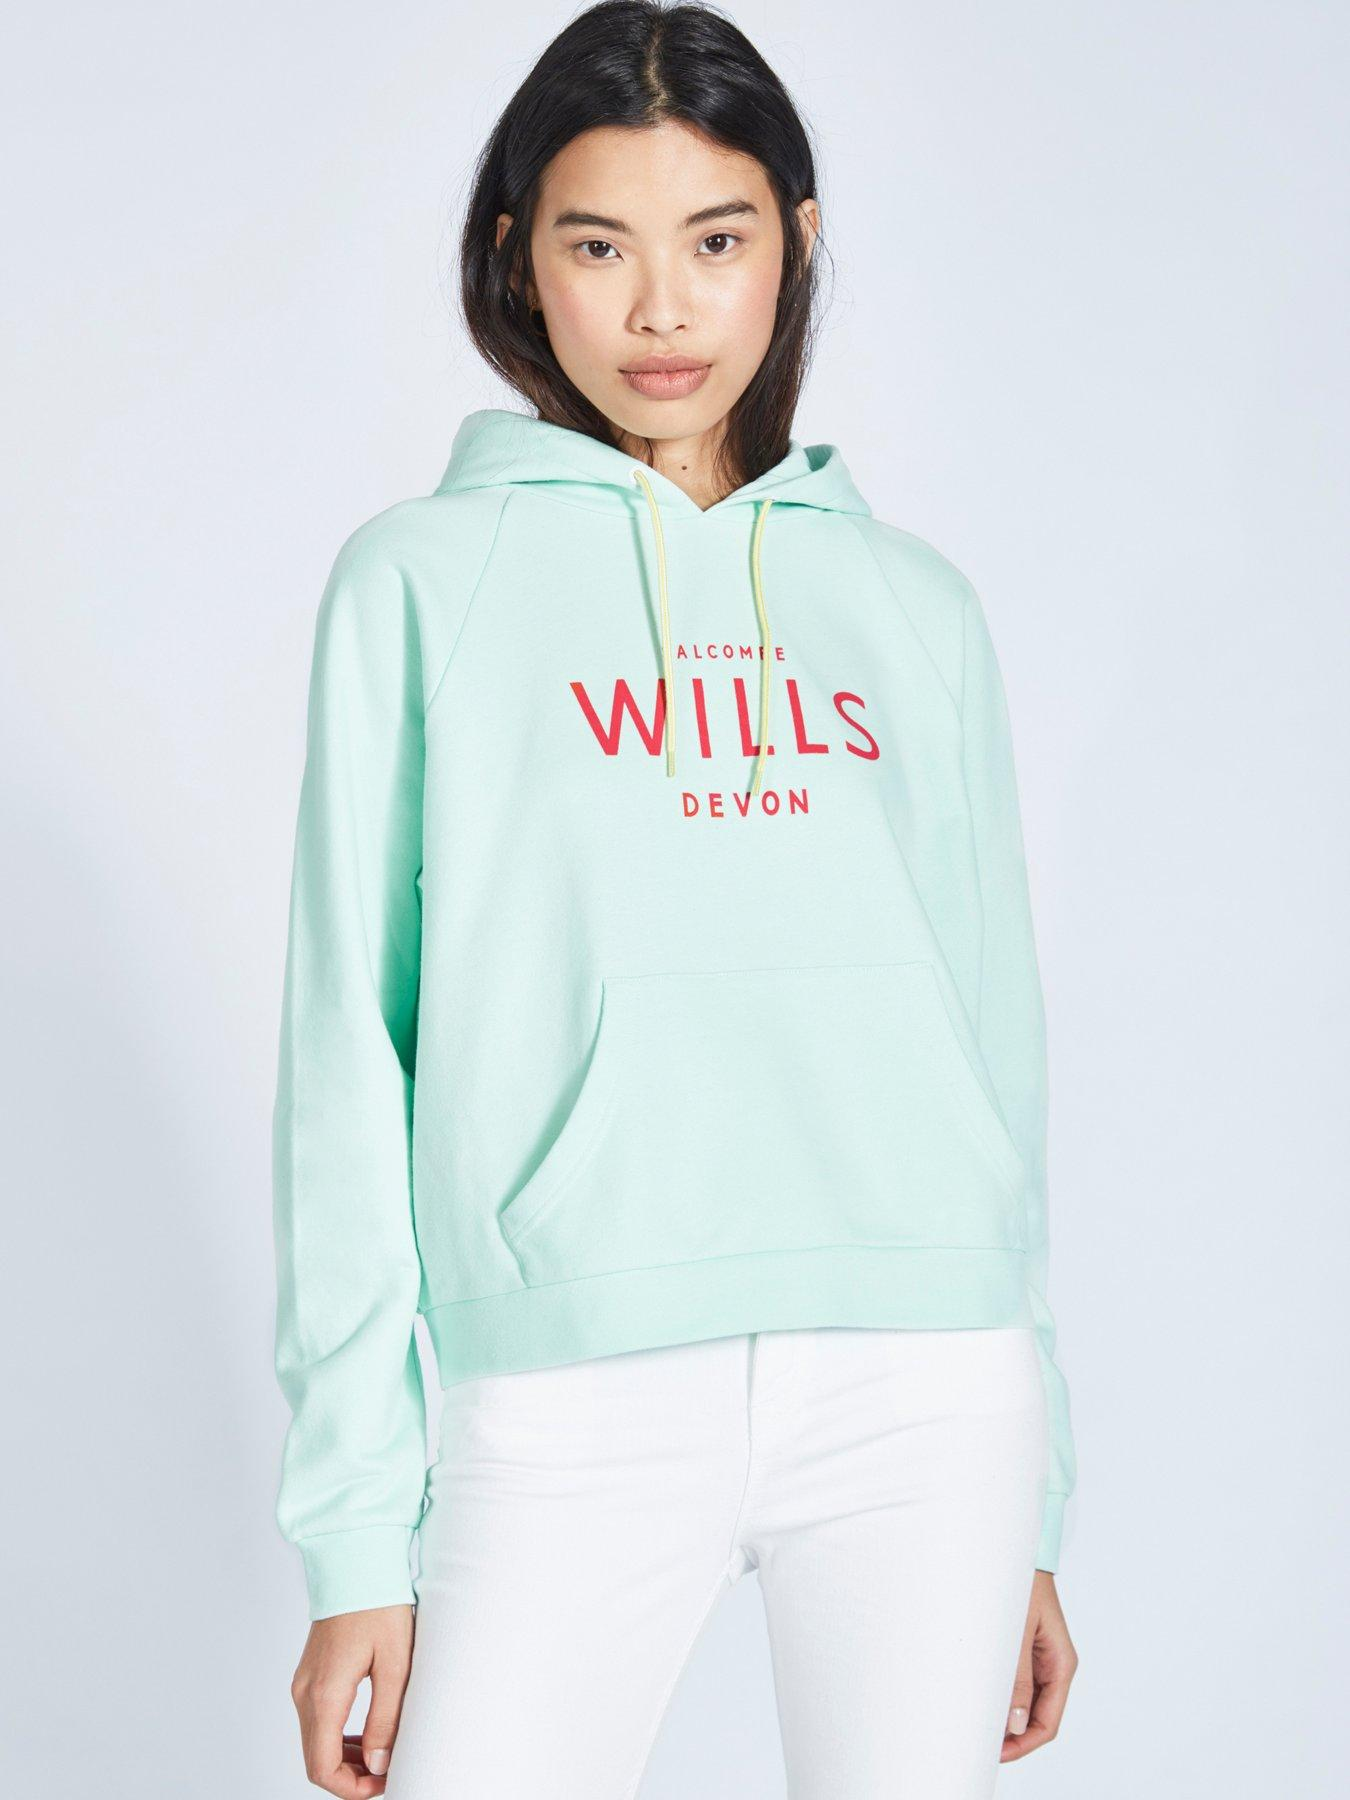 Men's Clothing Men's Jack Wills Zip Up Hoodie Small Cheap Sales 50% Clothing, Shoes & Accessories